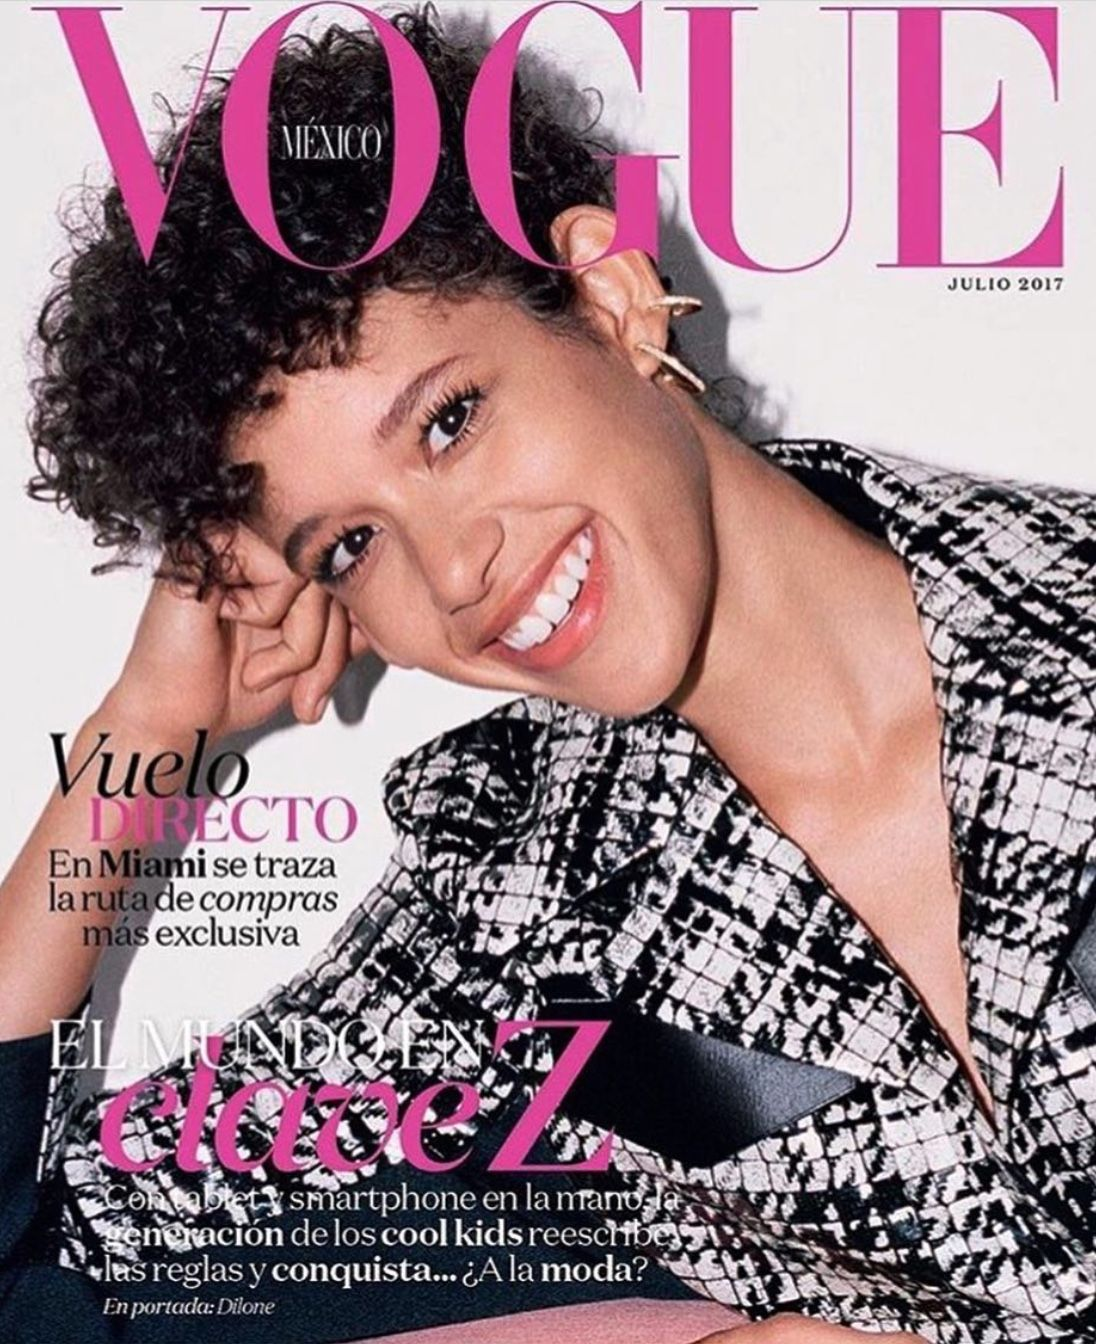 Pin by E on models/artists in 2020 Vogue covers, Vogue